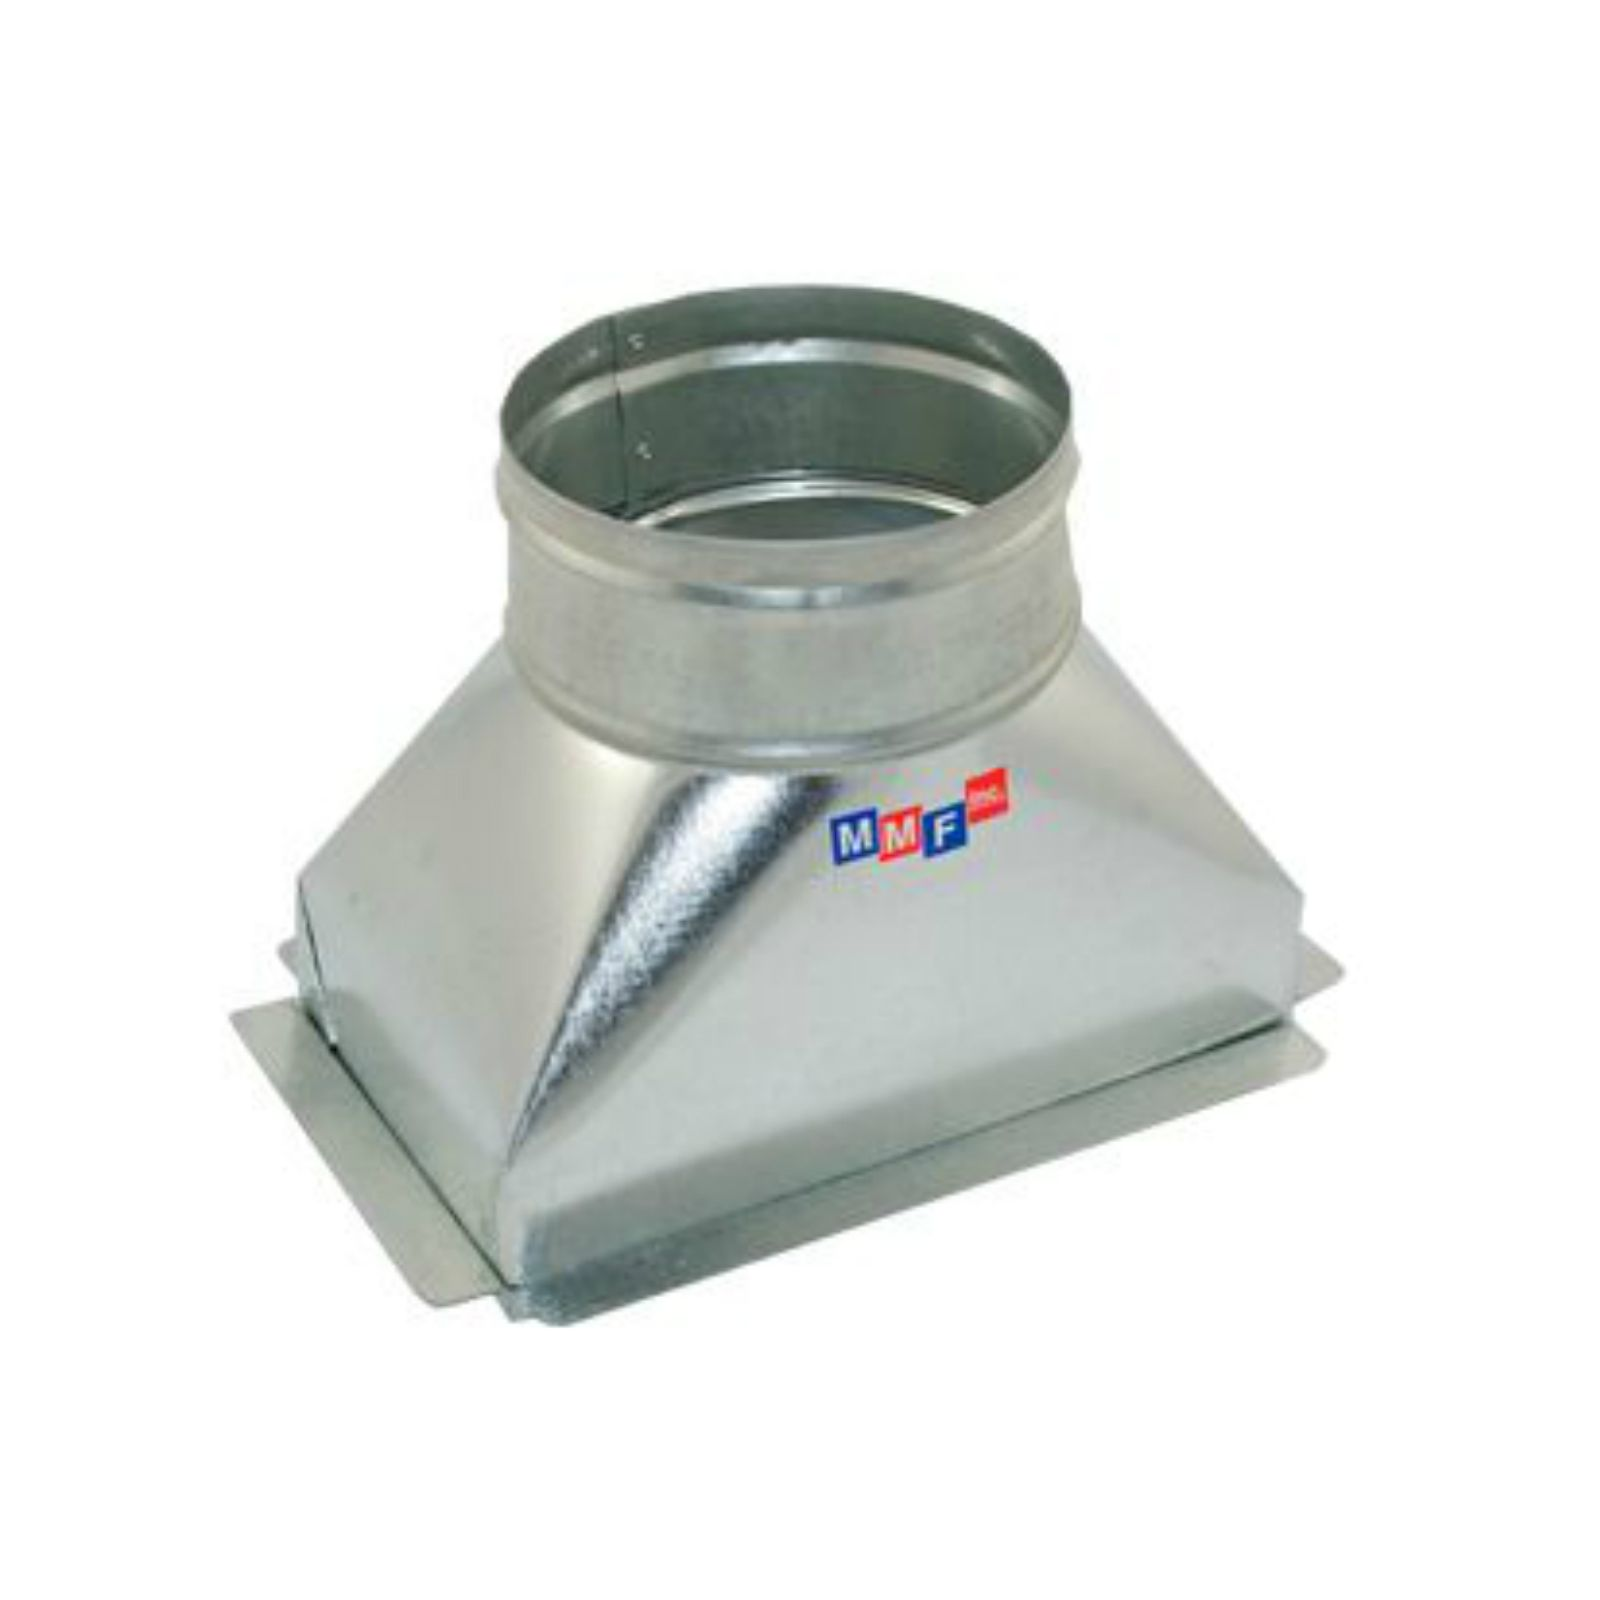 "Modular Metal BTSFG120809P - Sealed Floor Box - 30 Gauge - With Plaster Ground Flange 12"" X 08"" To 09"" Round"